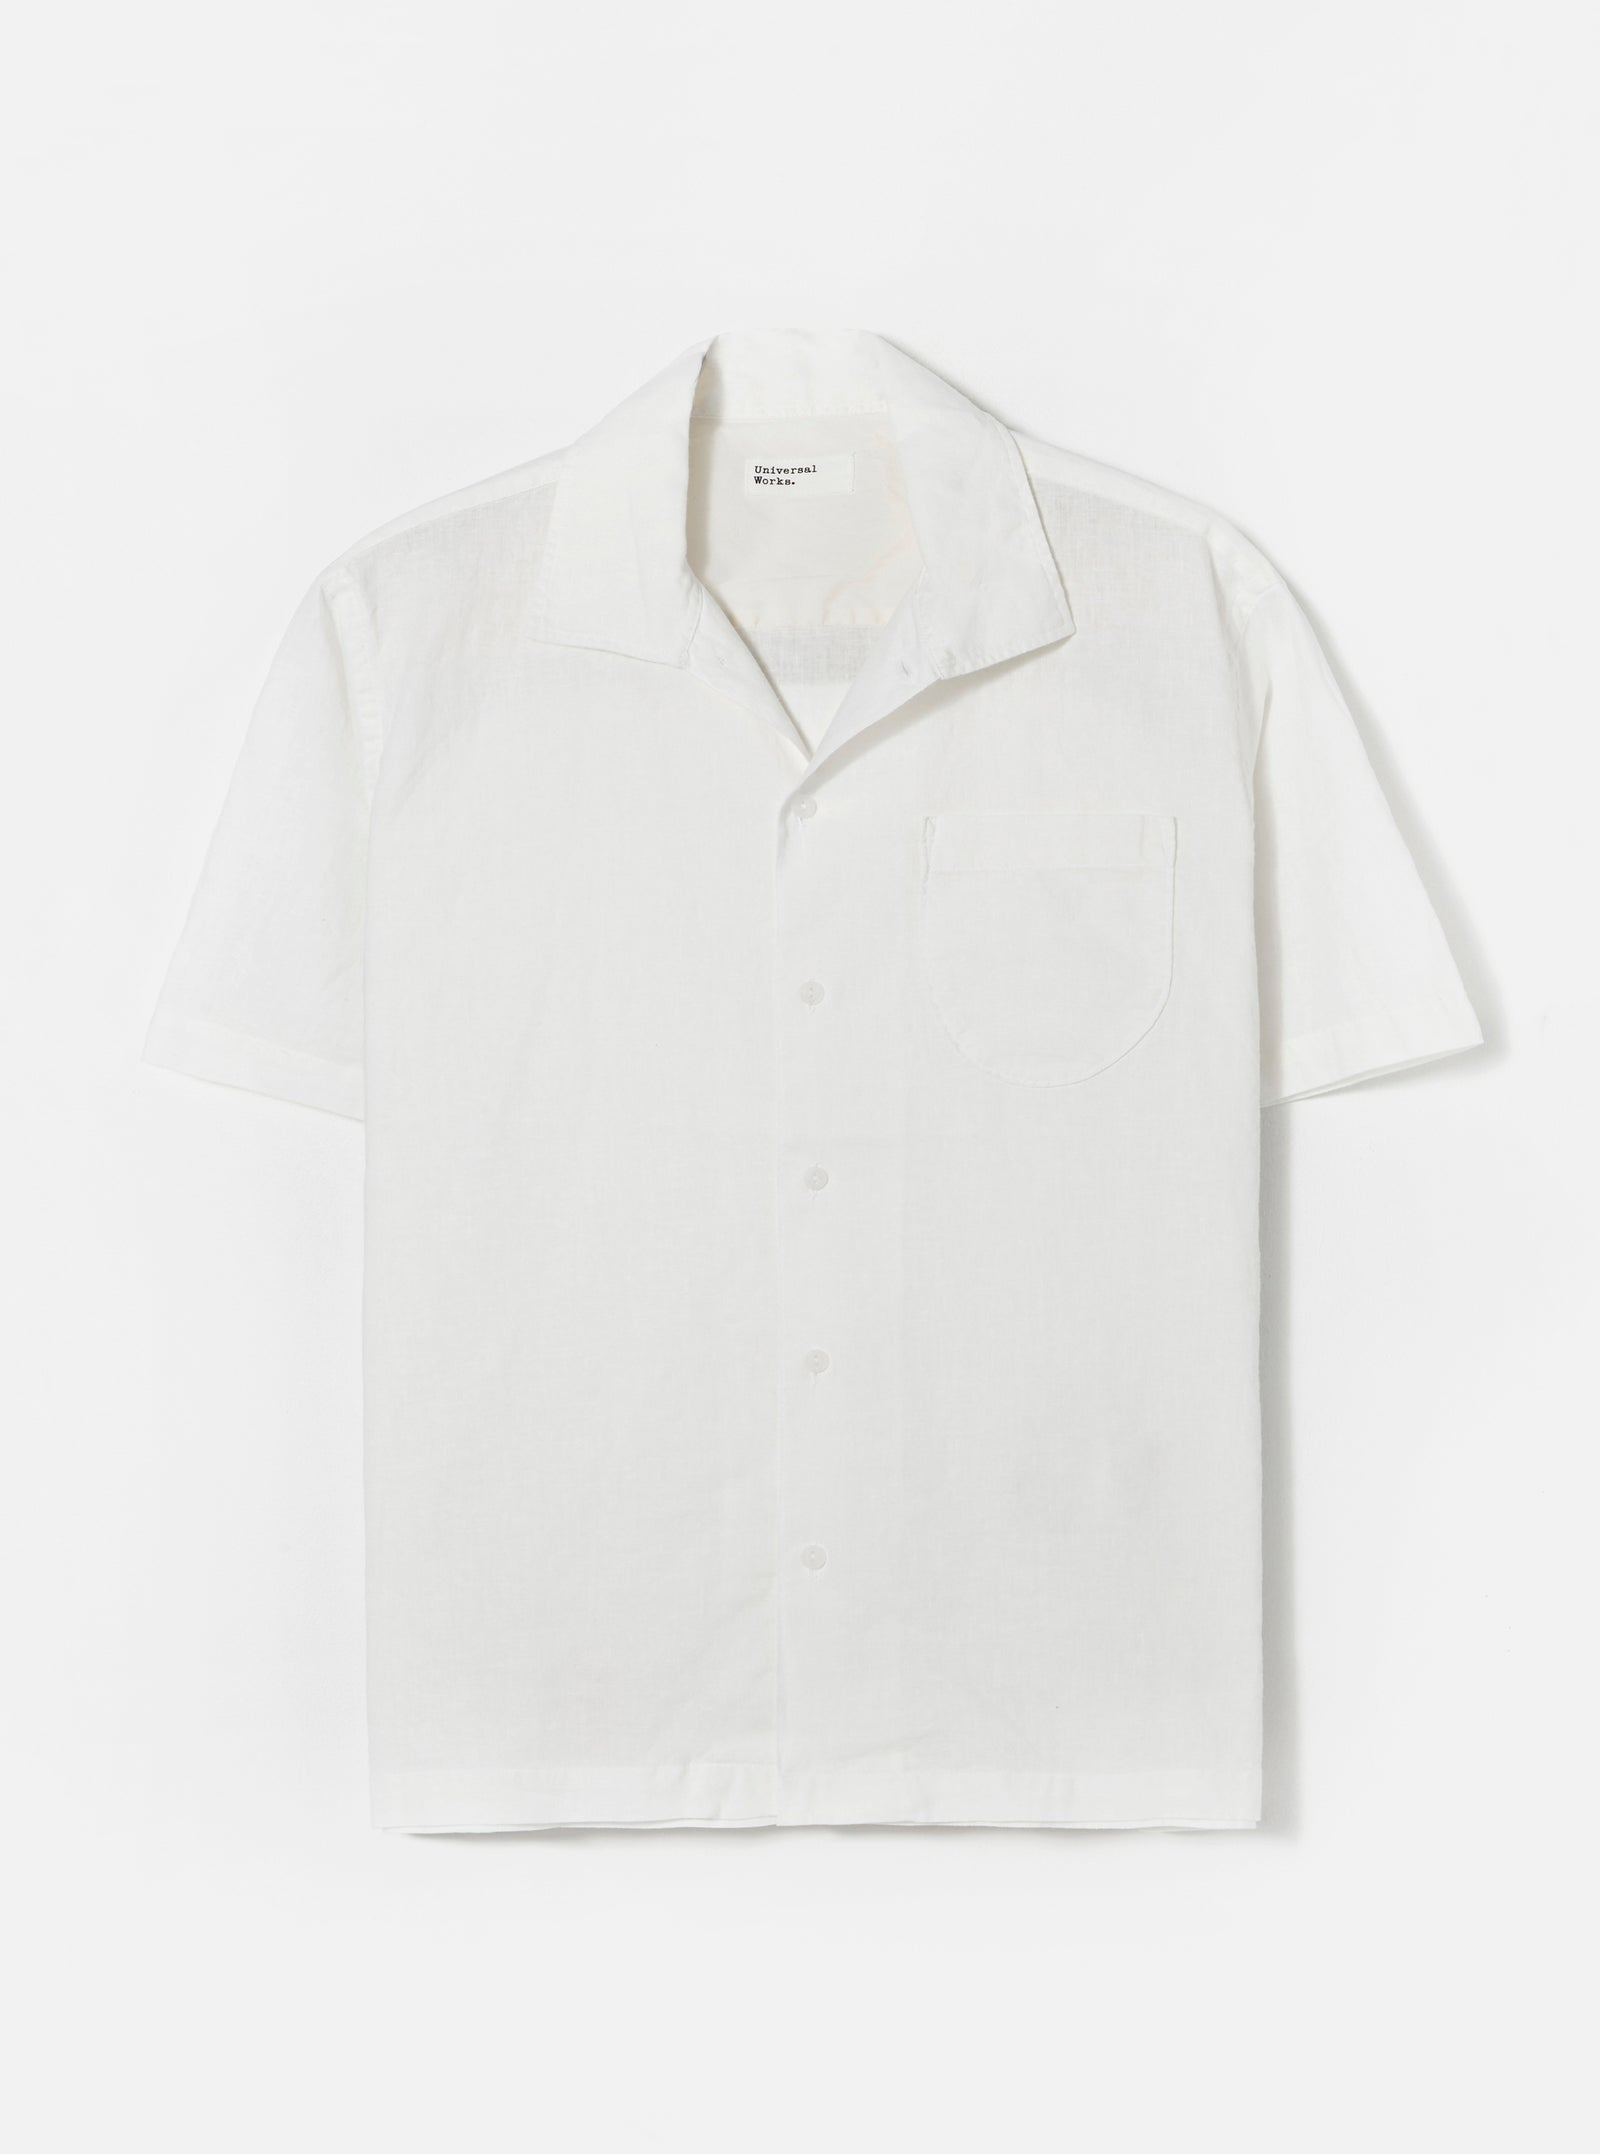 Universal Works Open Collar Shirt in Ecru Linen Shirting